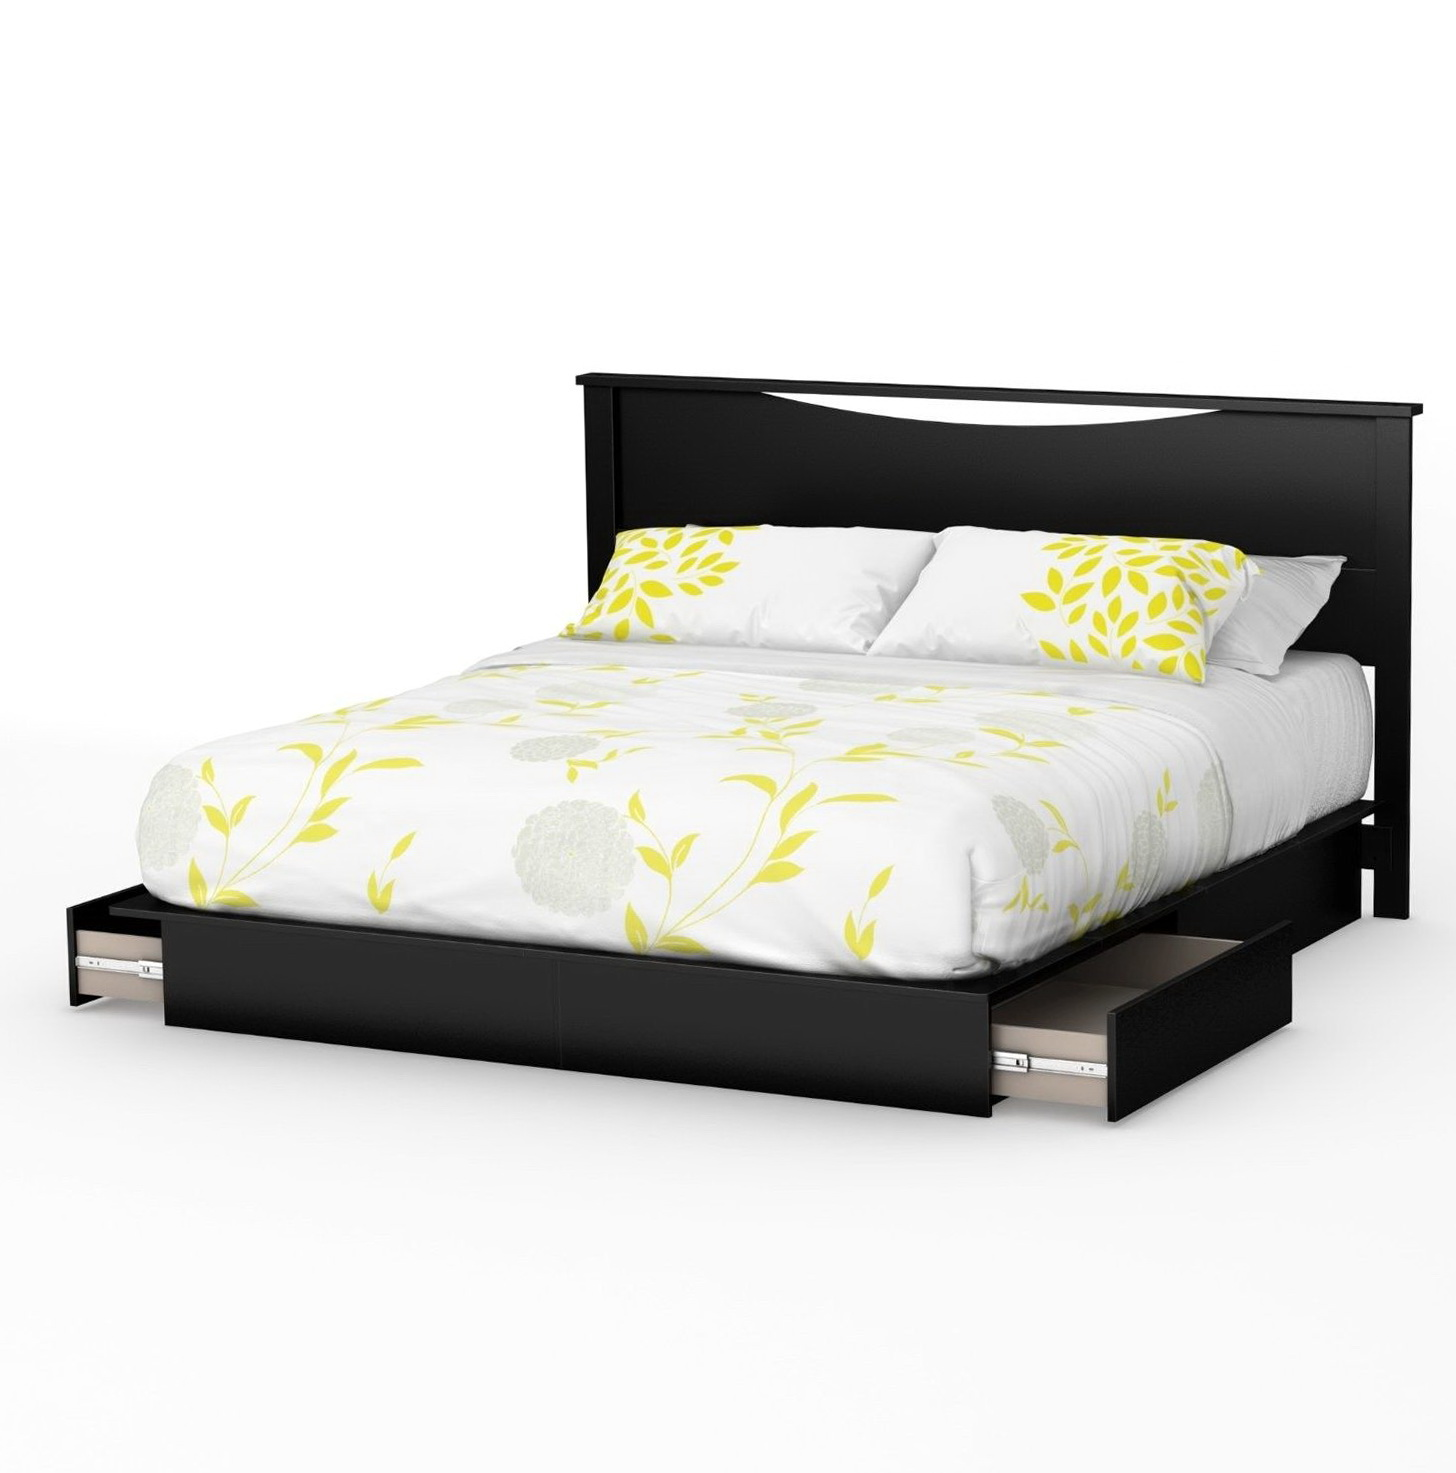 Platform Bed With Storage Drawers